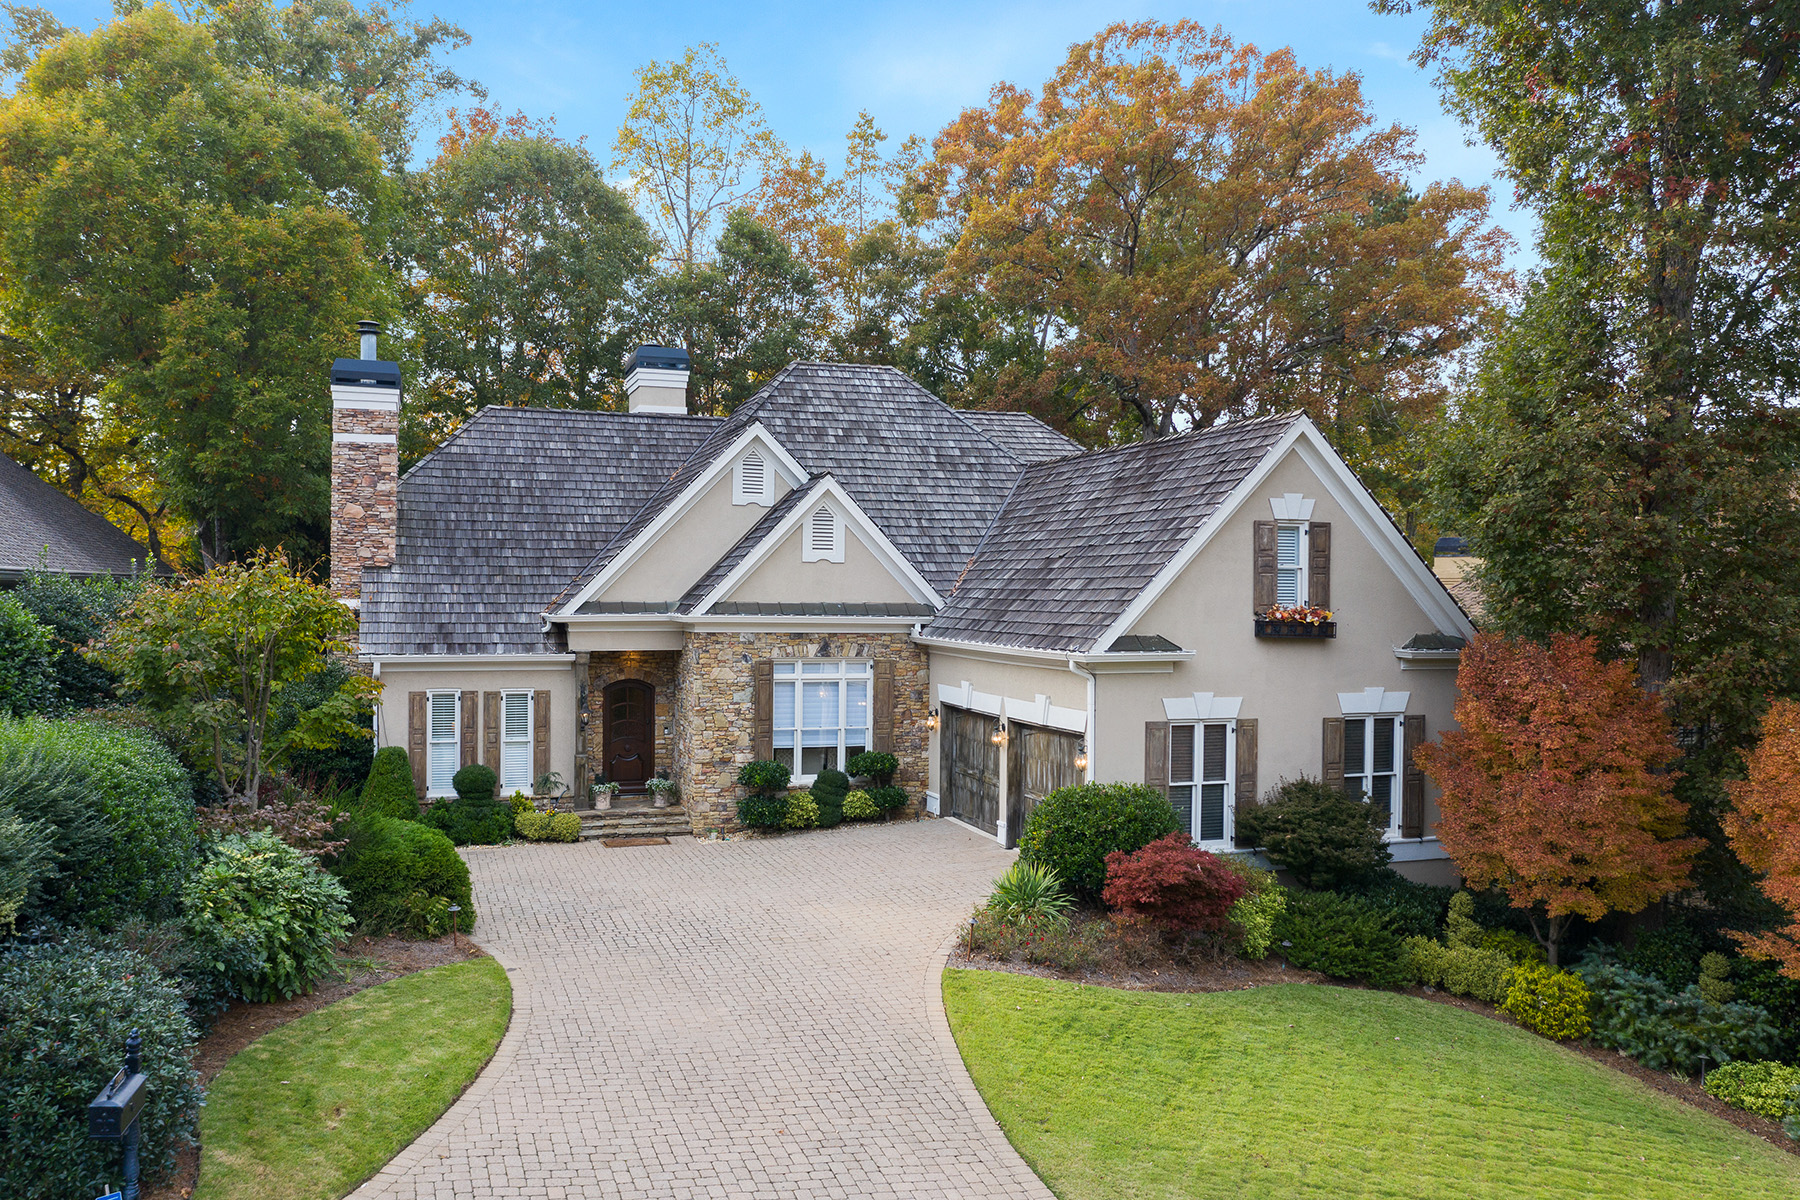 Property のために 売買 アット This Updated Home Checks All The Boxes 1007 Wetherby Way, Johns Creek, ジョージア 30022 アメリカ